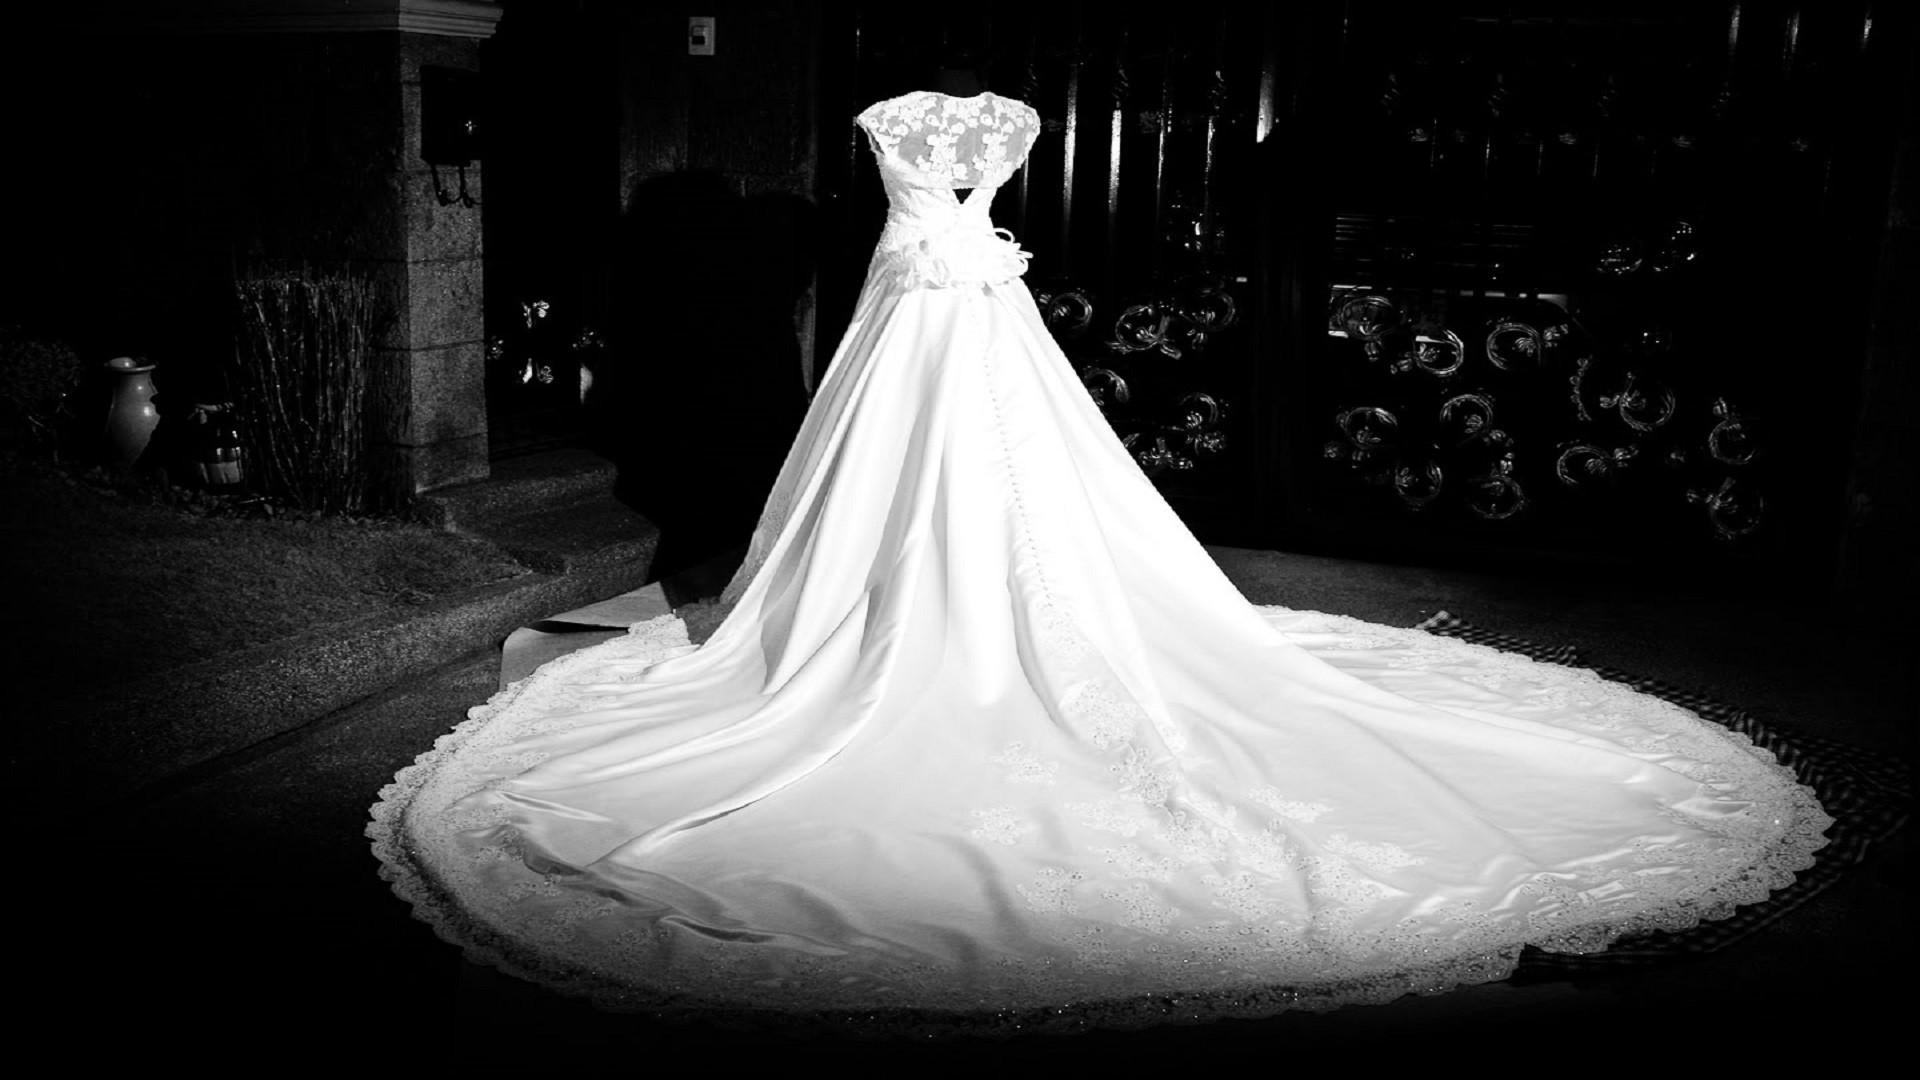 Wedding Gowns Pic: Wedding Dress Wallpaper (66+ Images